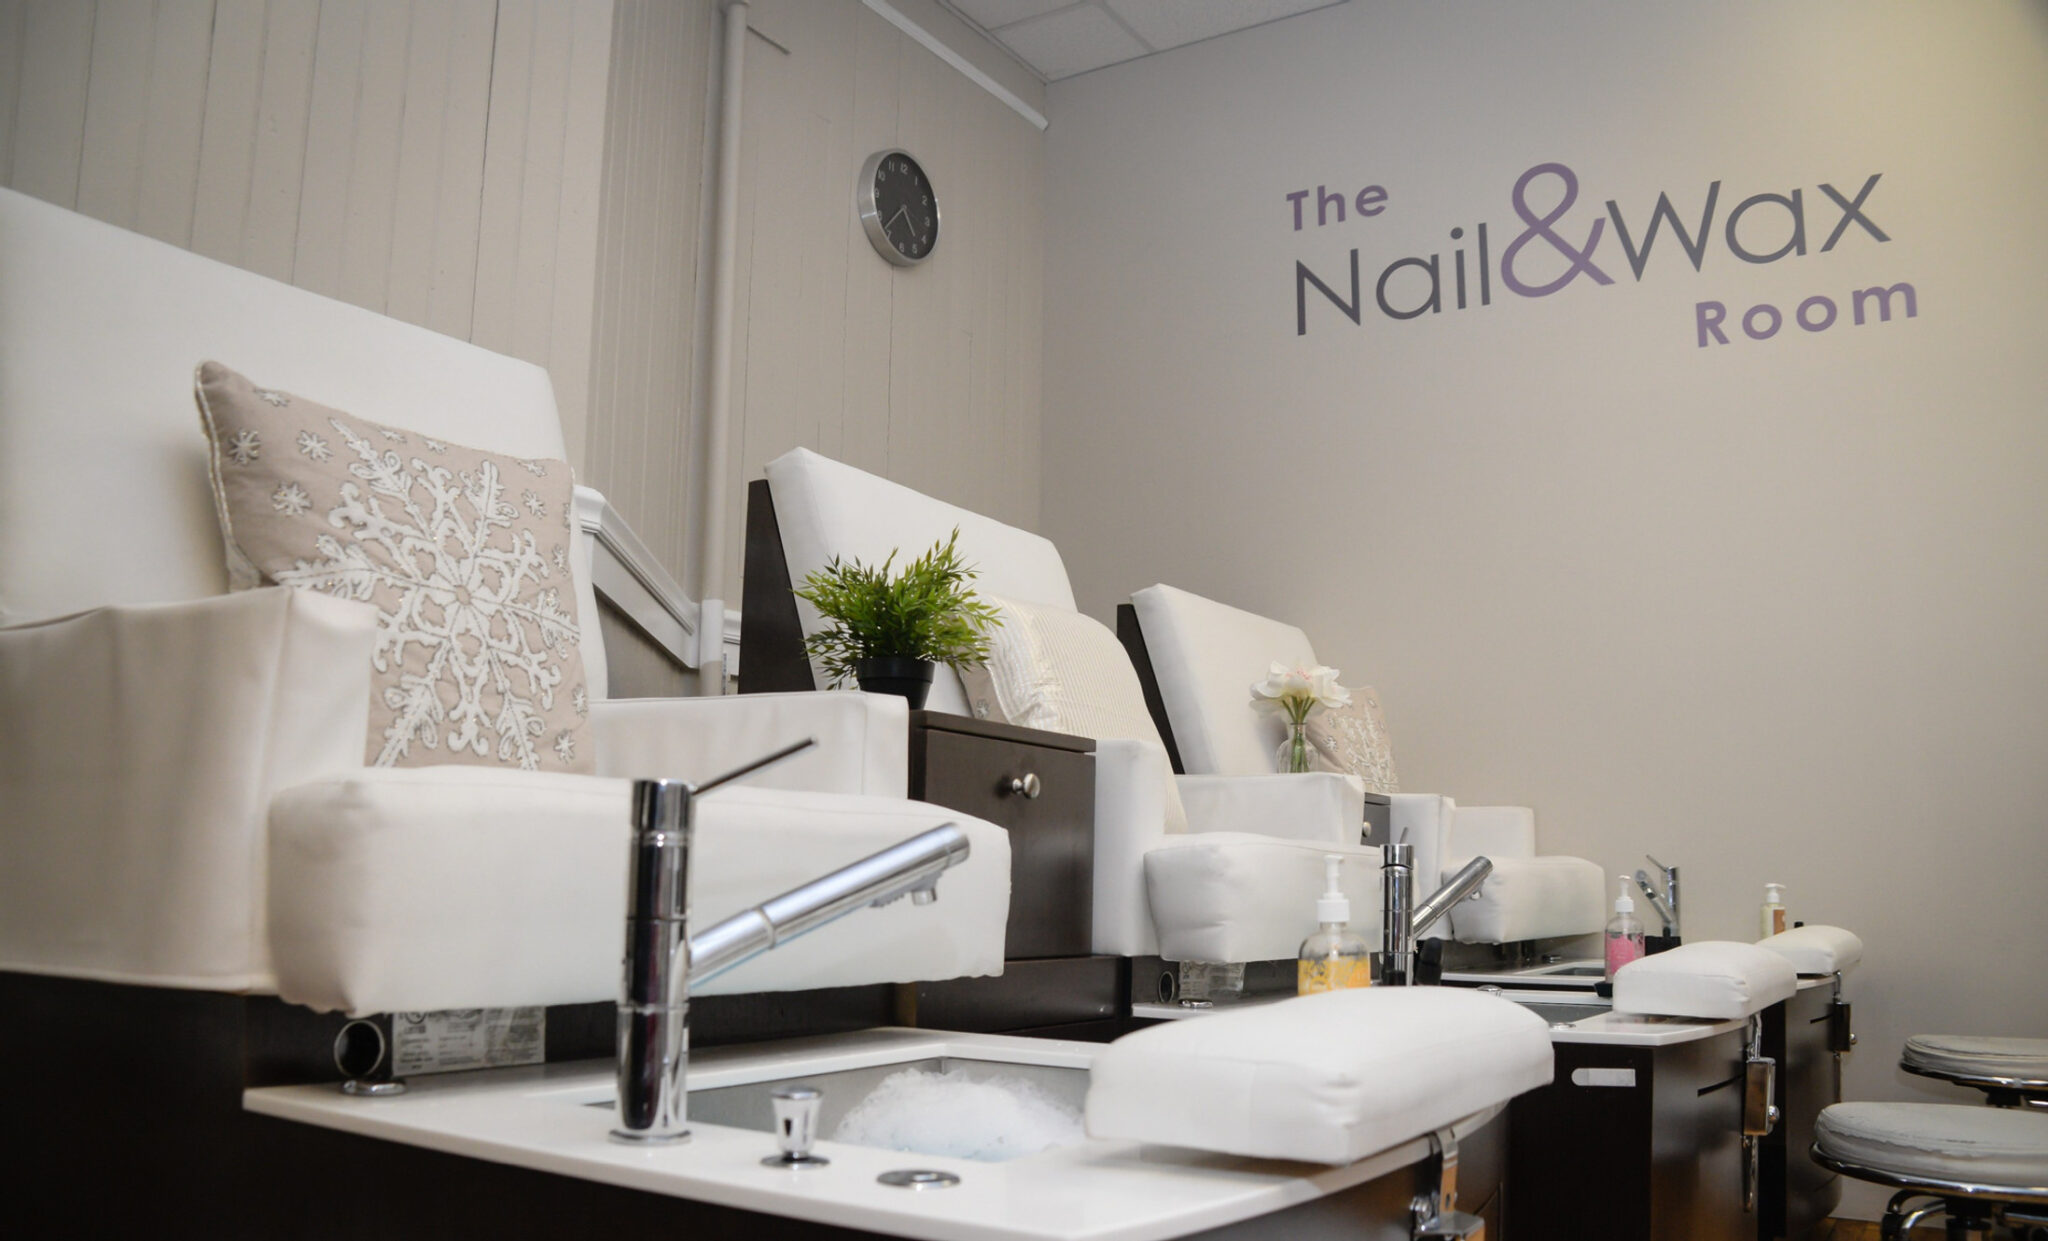 The Nail and Wax Room Wallingford CT